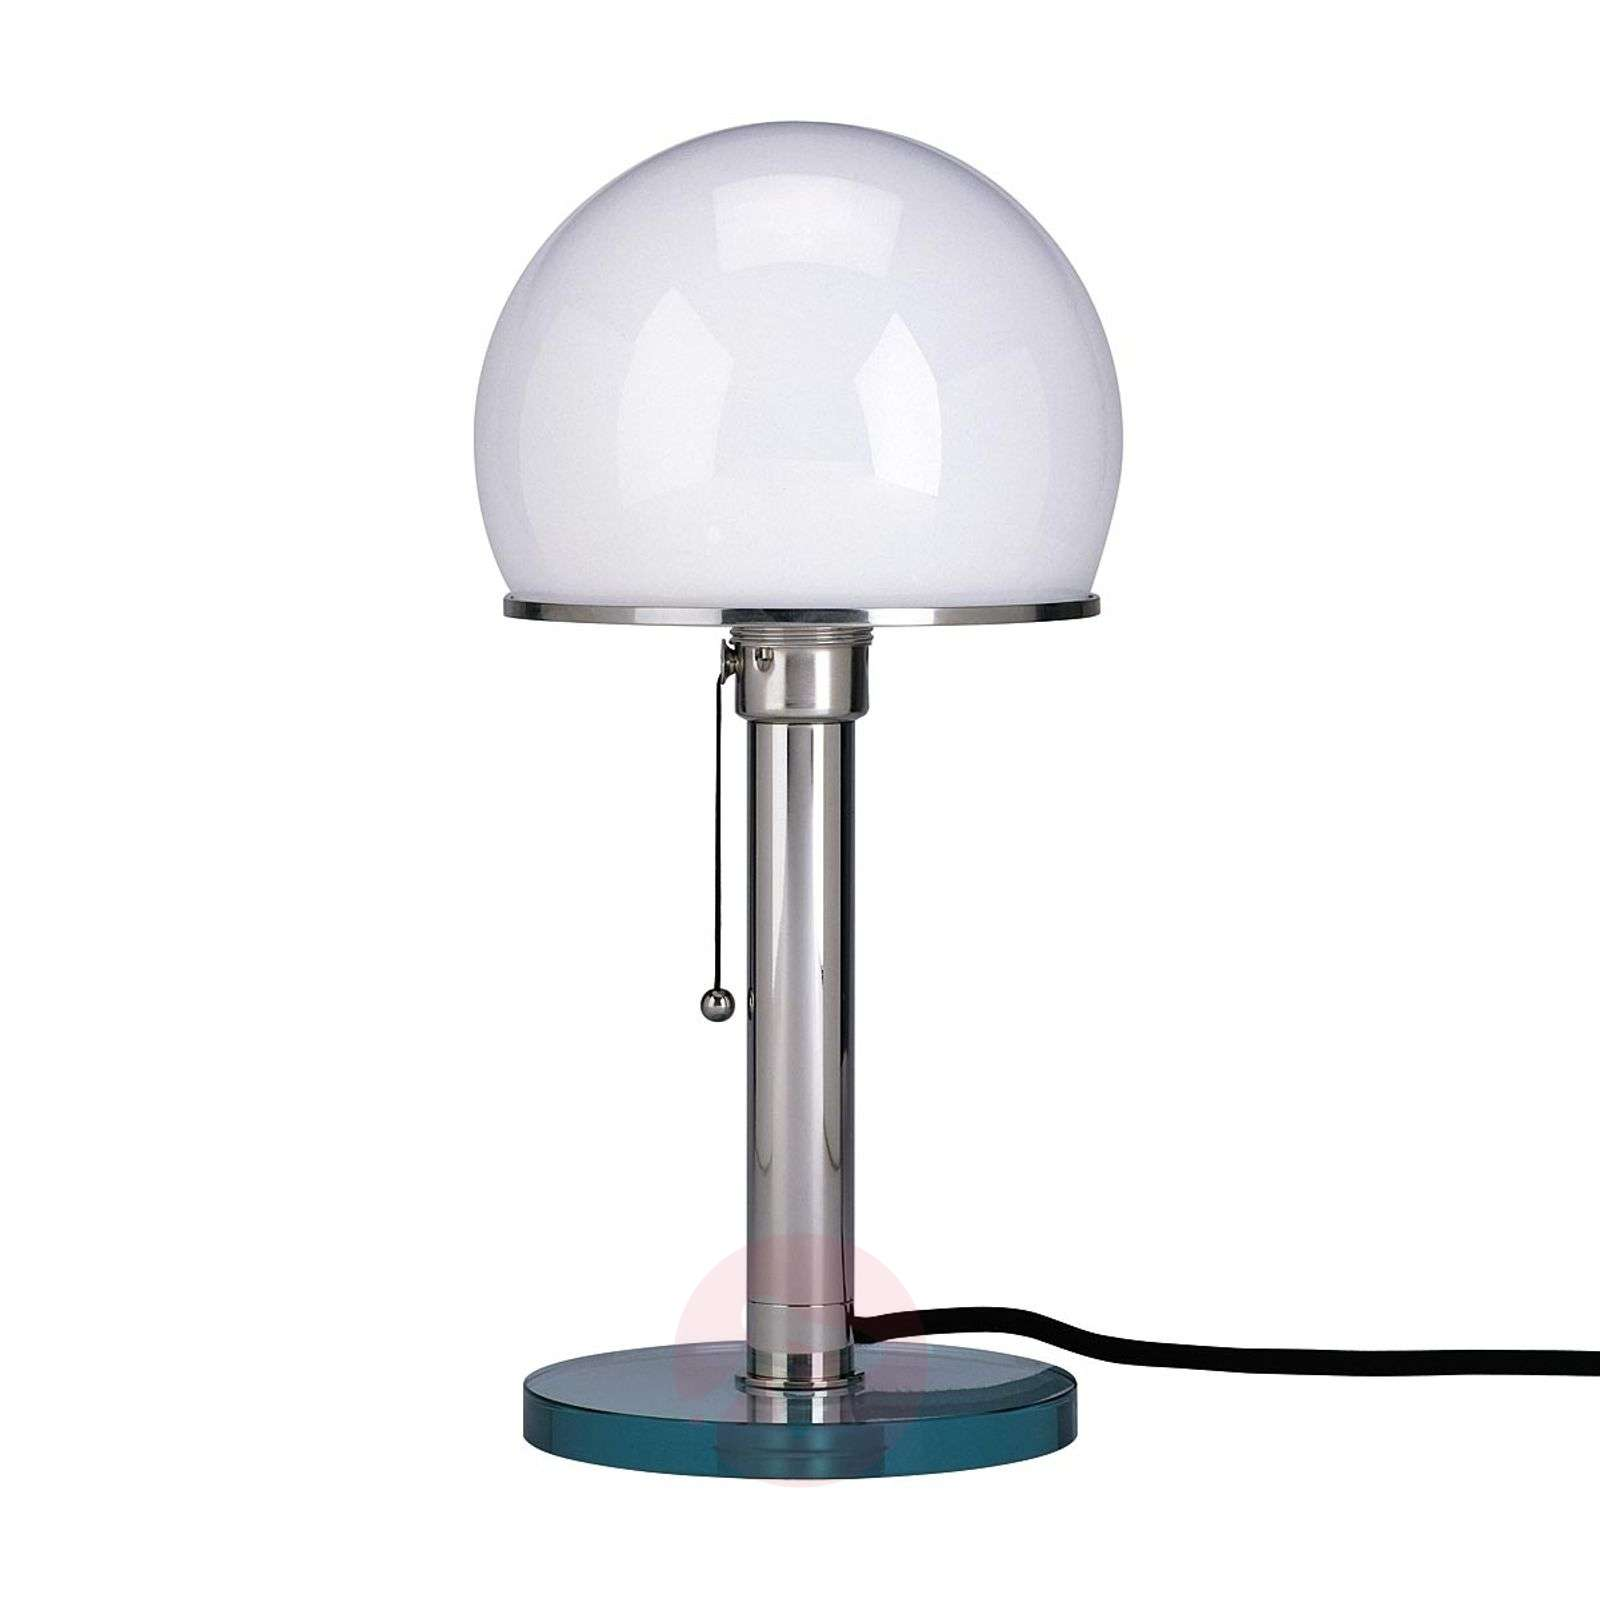 Wagenfeld table lamp with glass base and metal rod-9030004-01